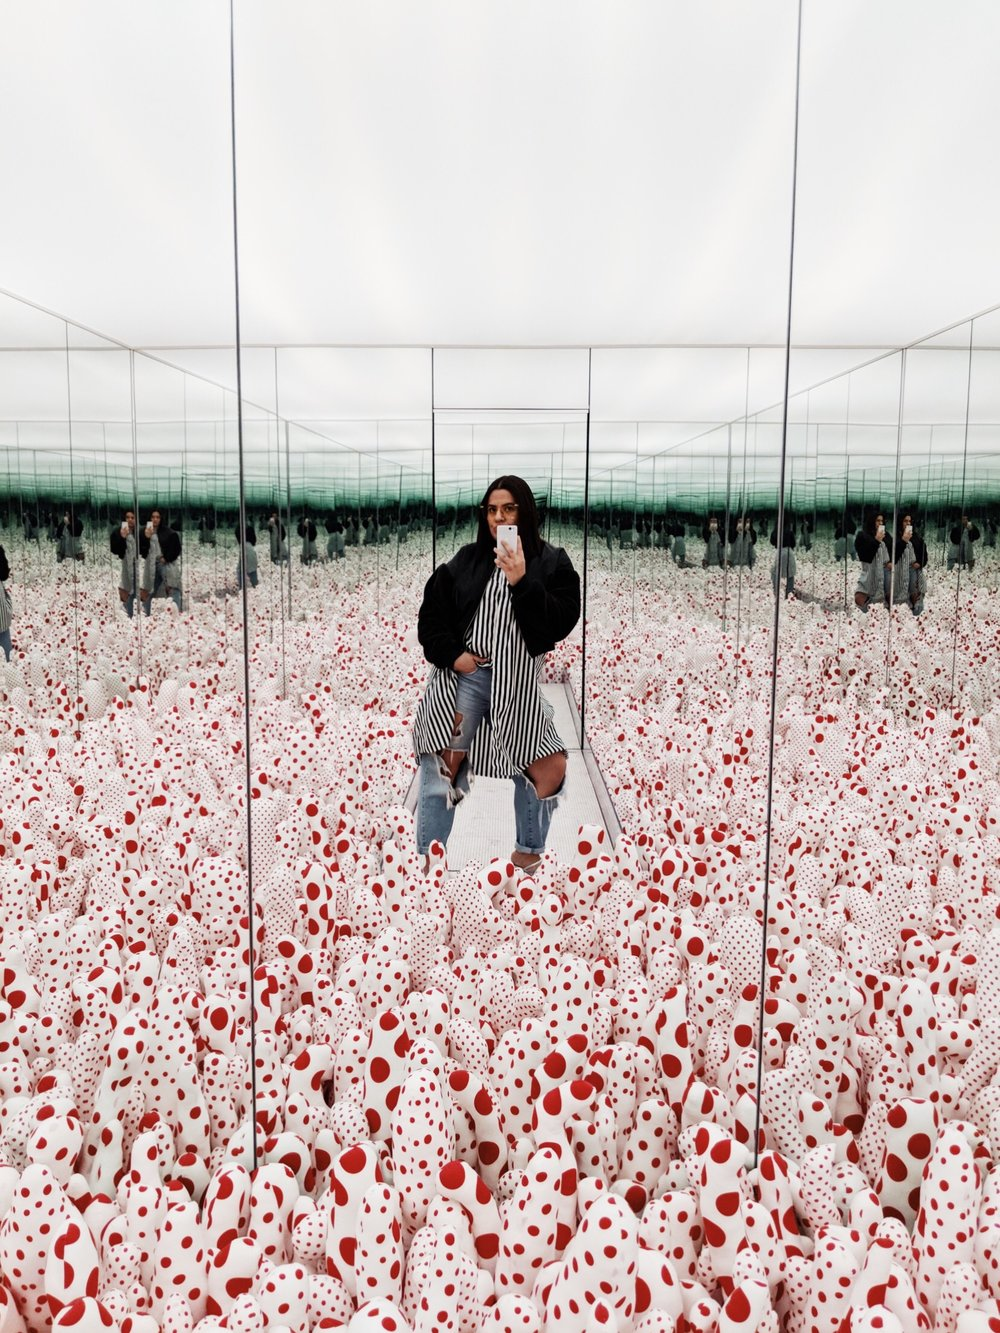 Yayoi Kusama at The Broad, Pixel 2 Camera